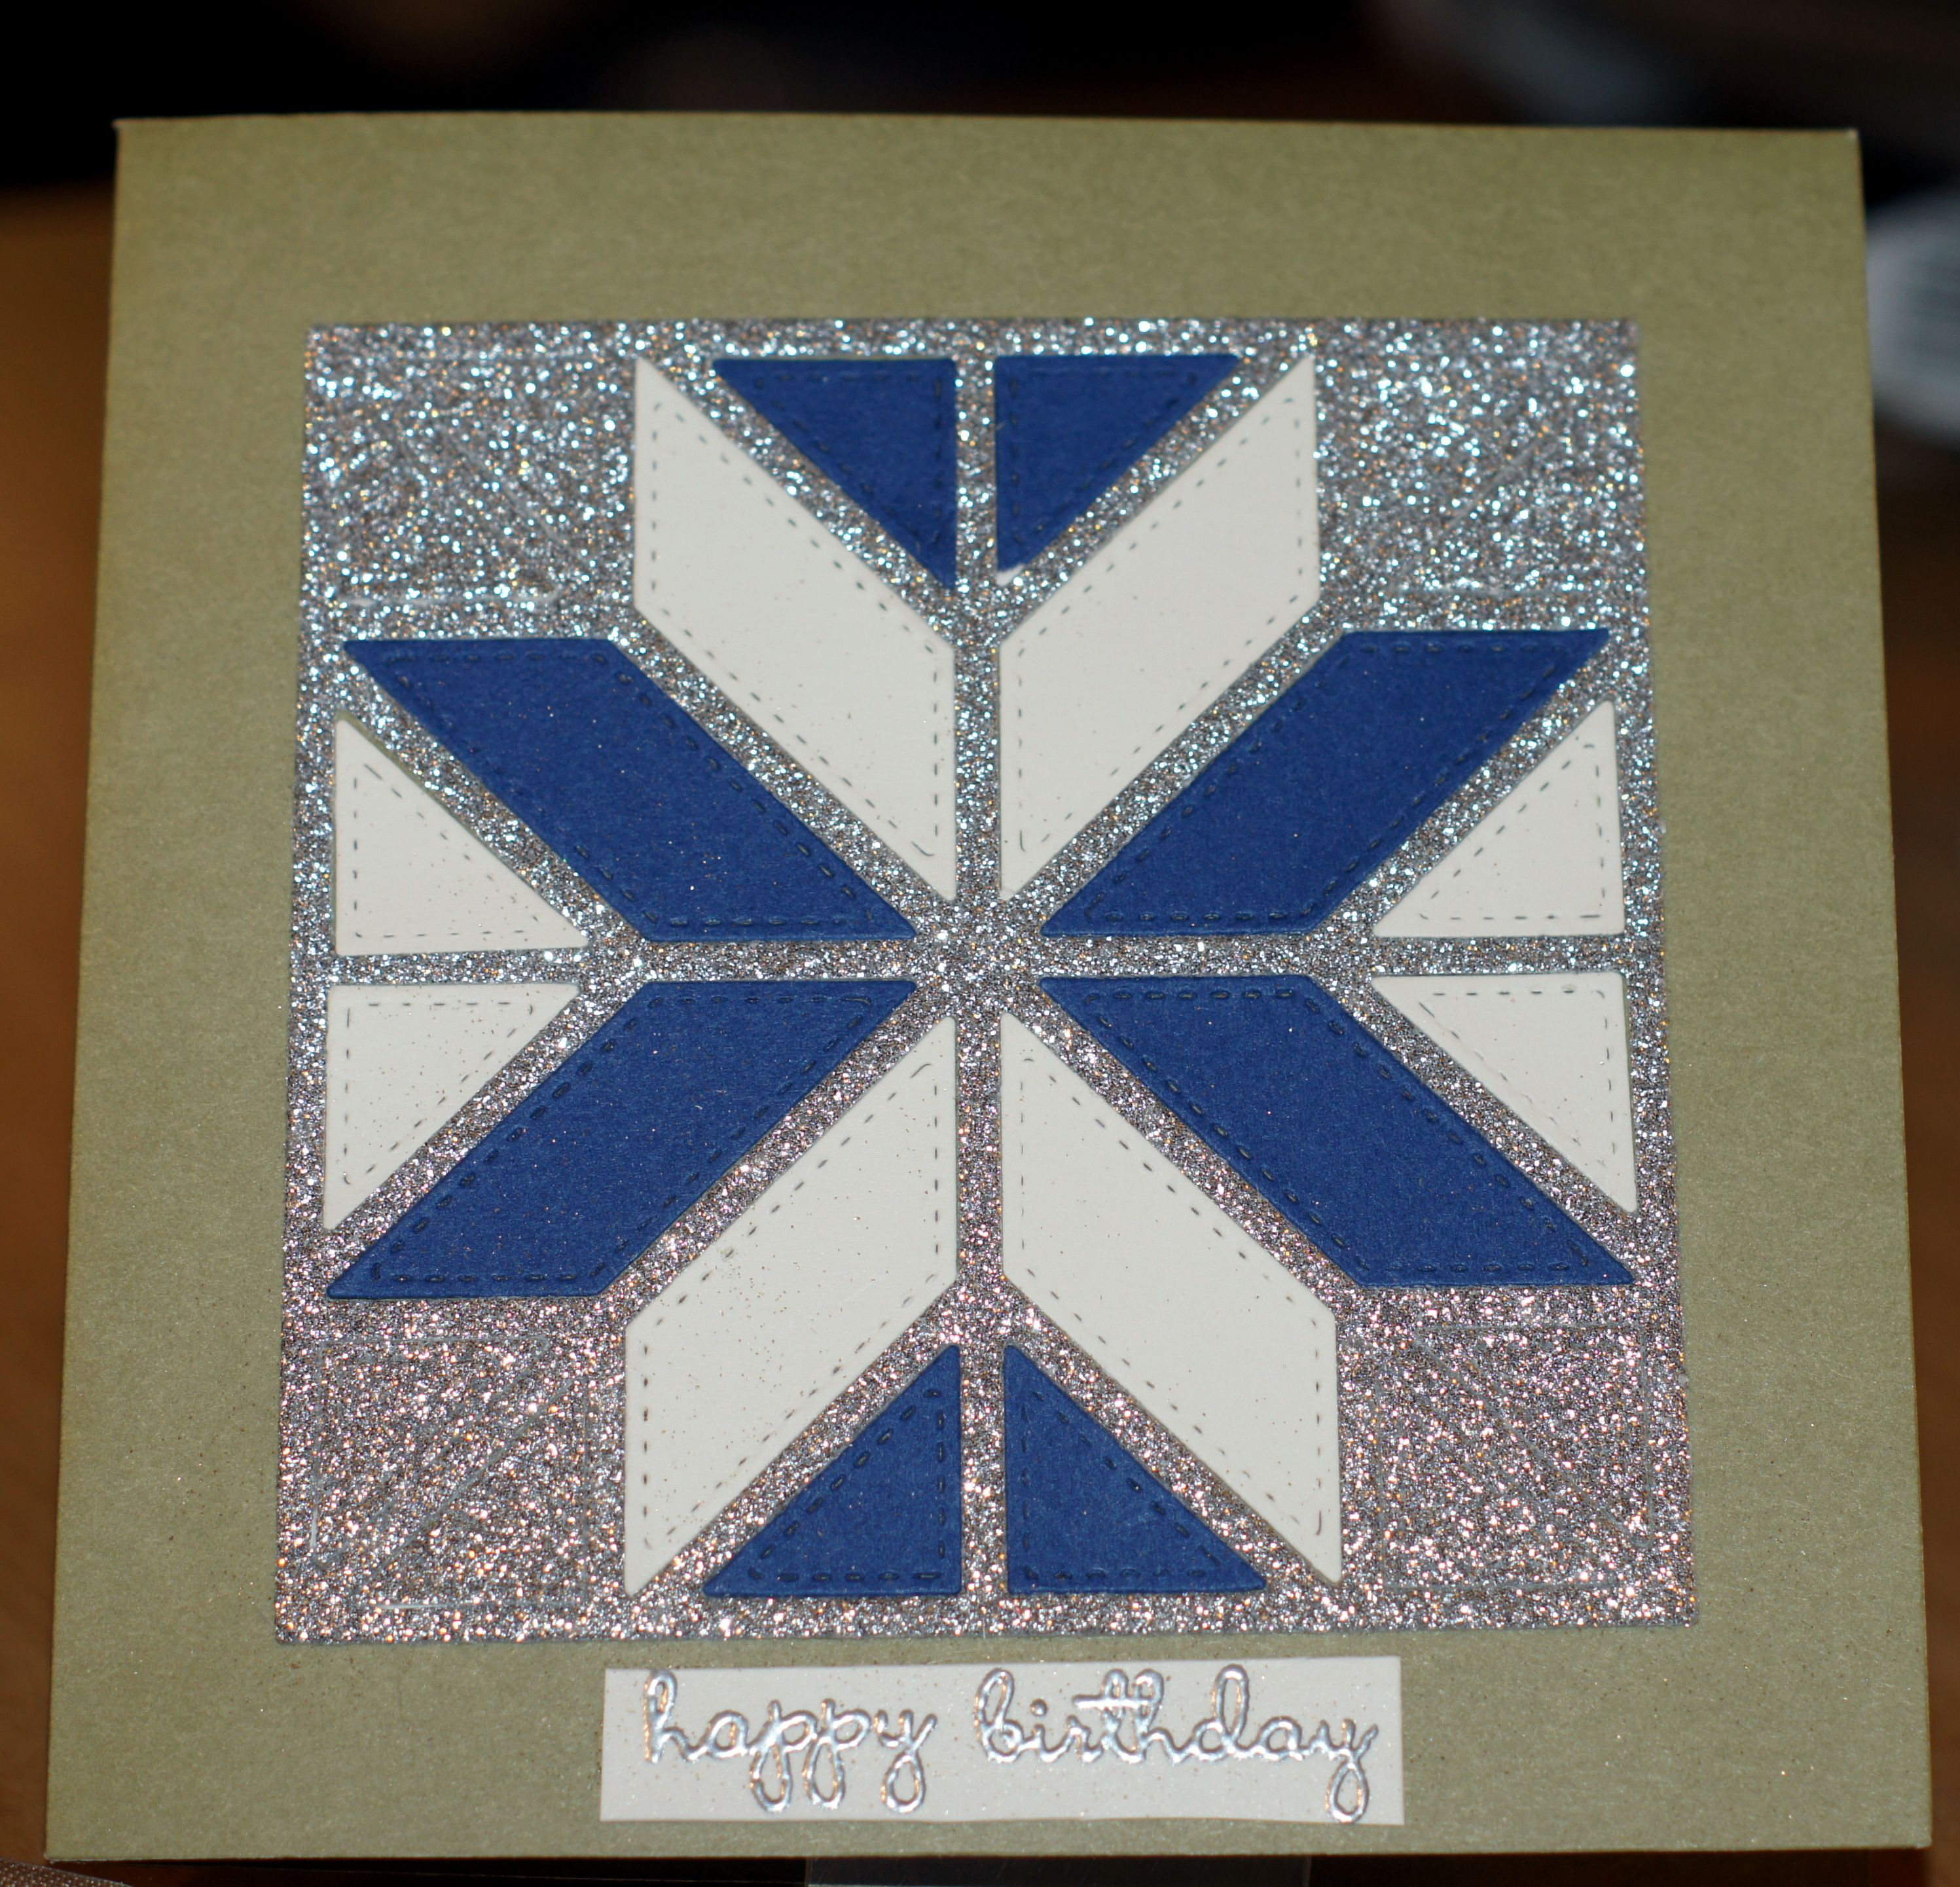 Birthday Card For A Member Of A Quilting Group Aliexpress Quilt Die